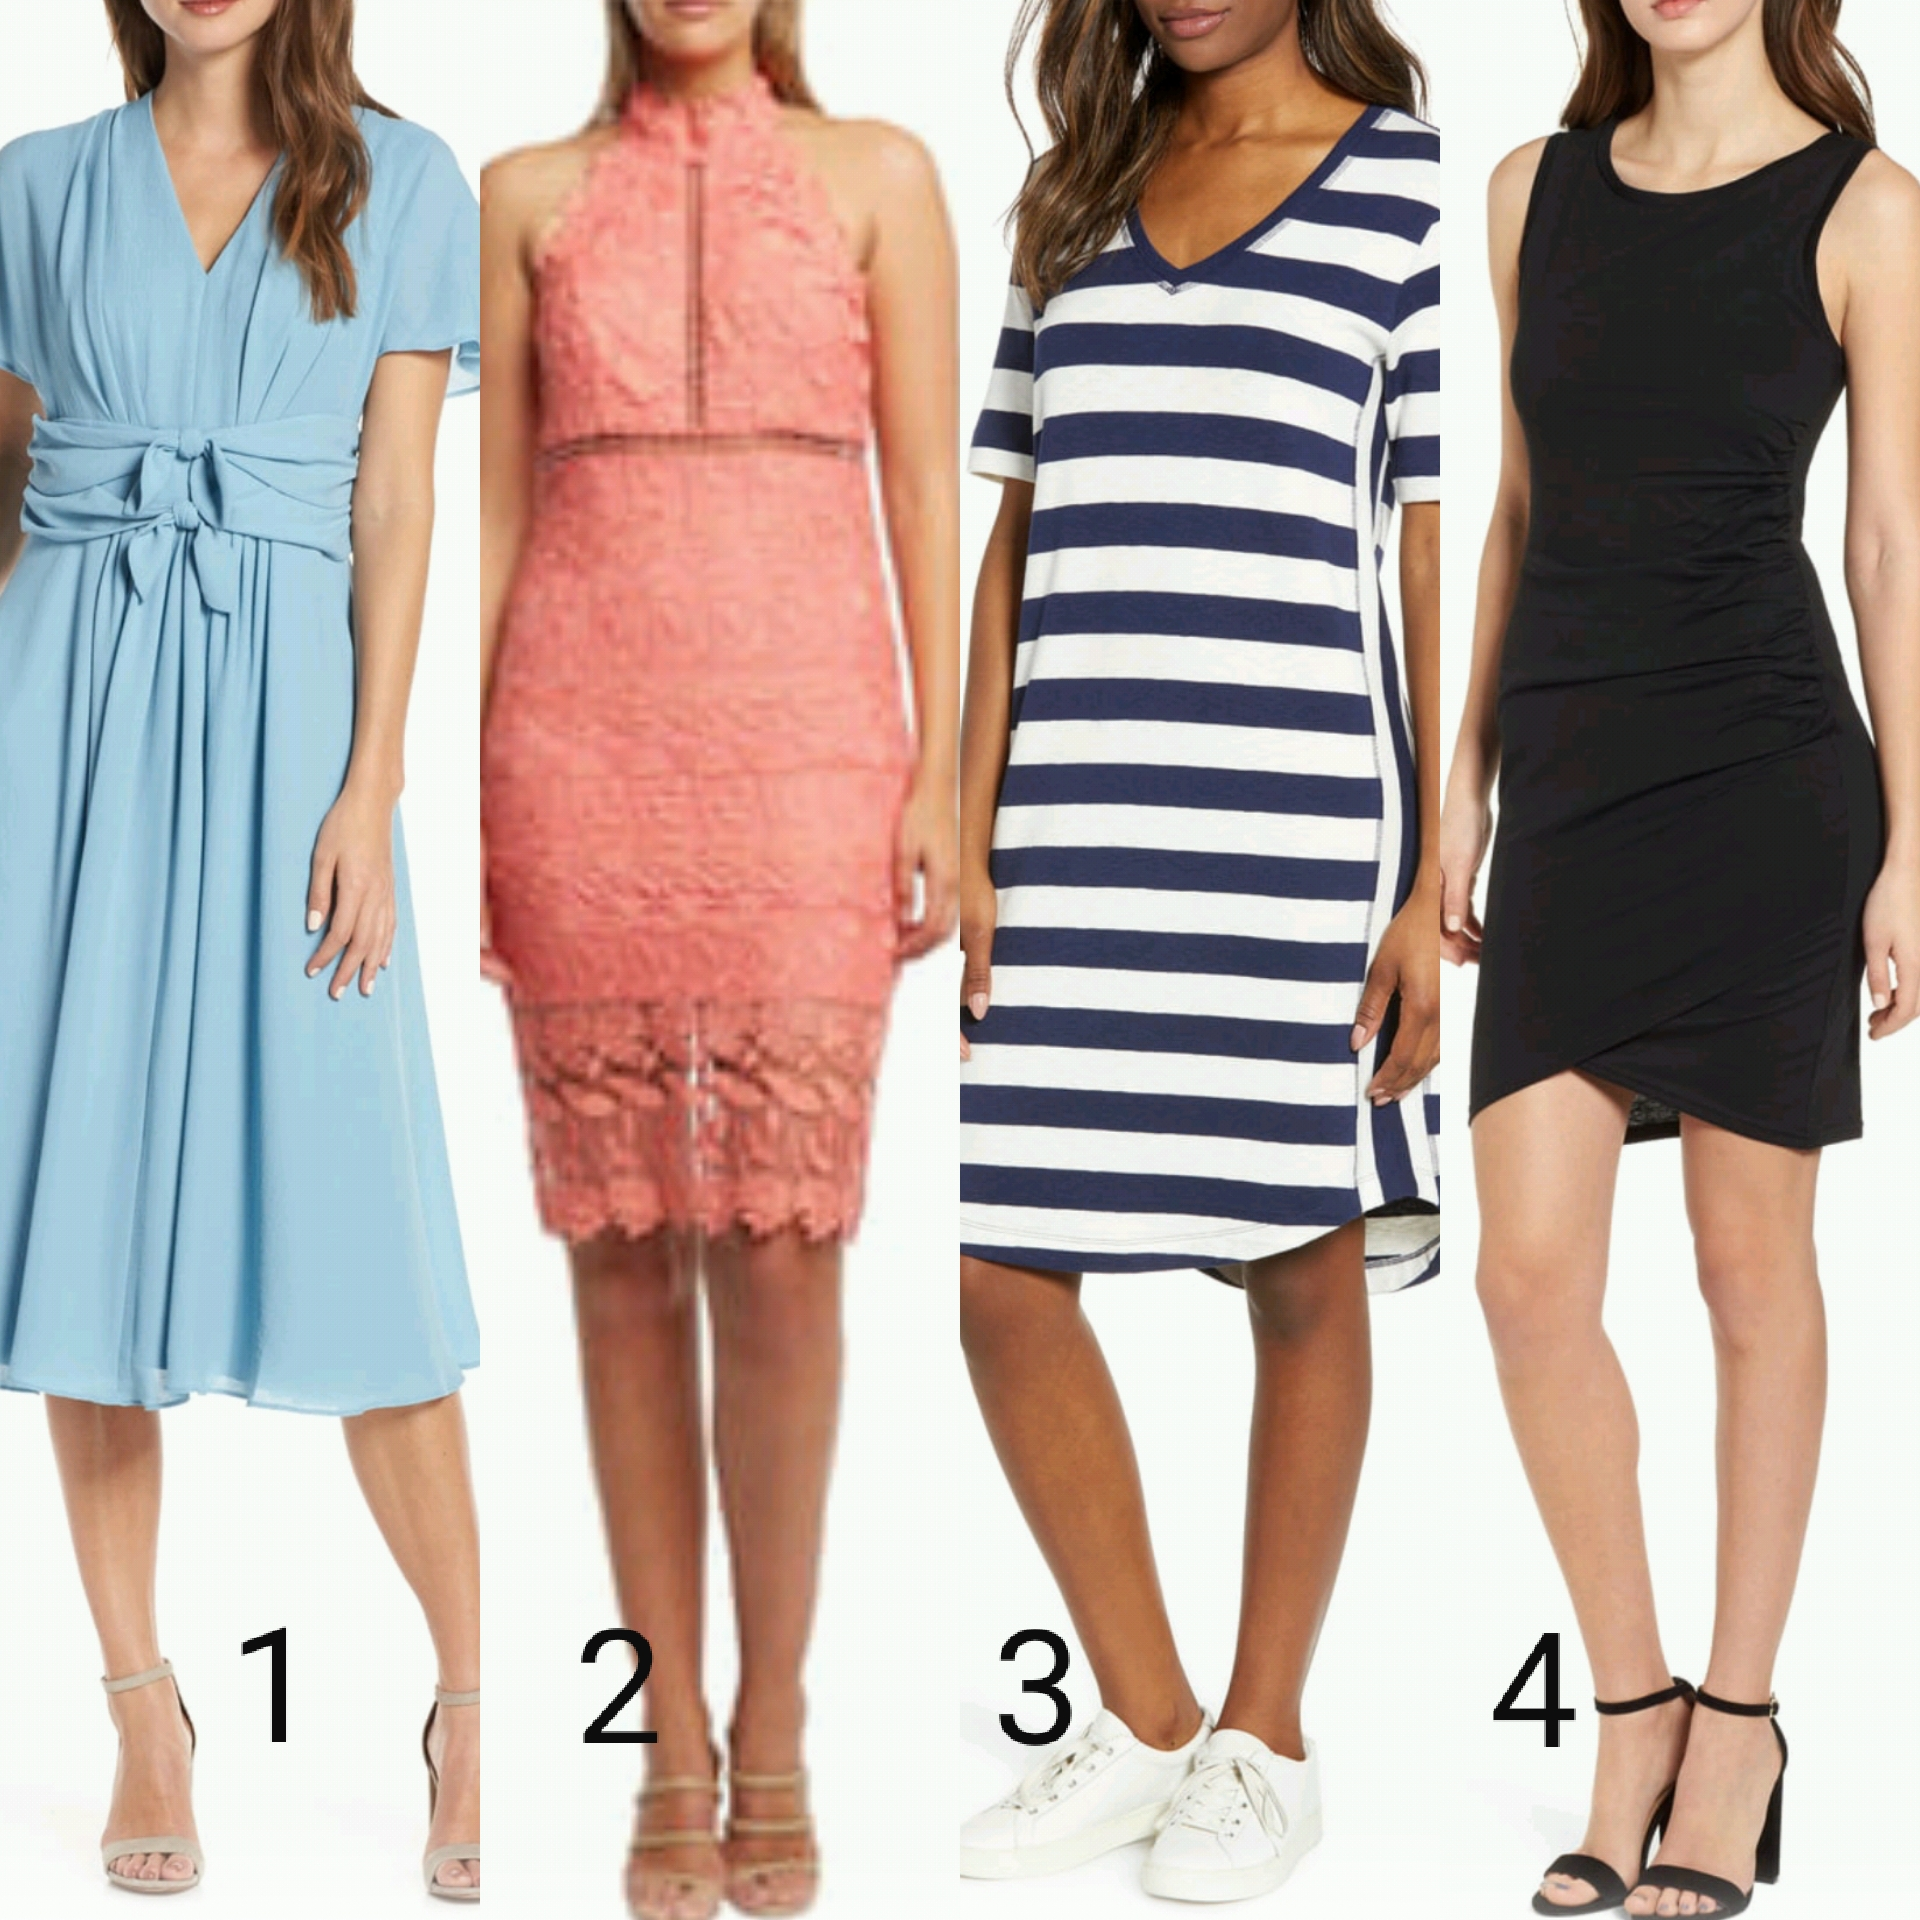 Nordstrom-spring-sale-picks-fabulouslyoverdressed